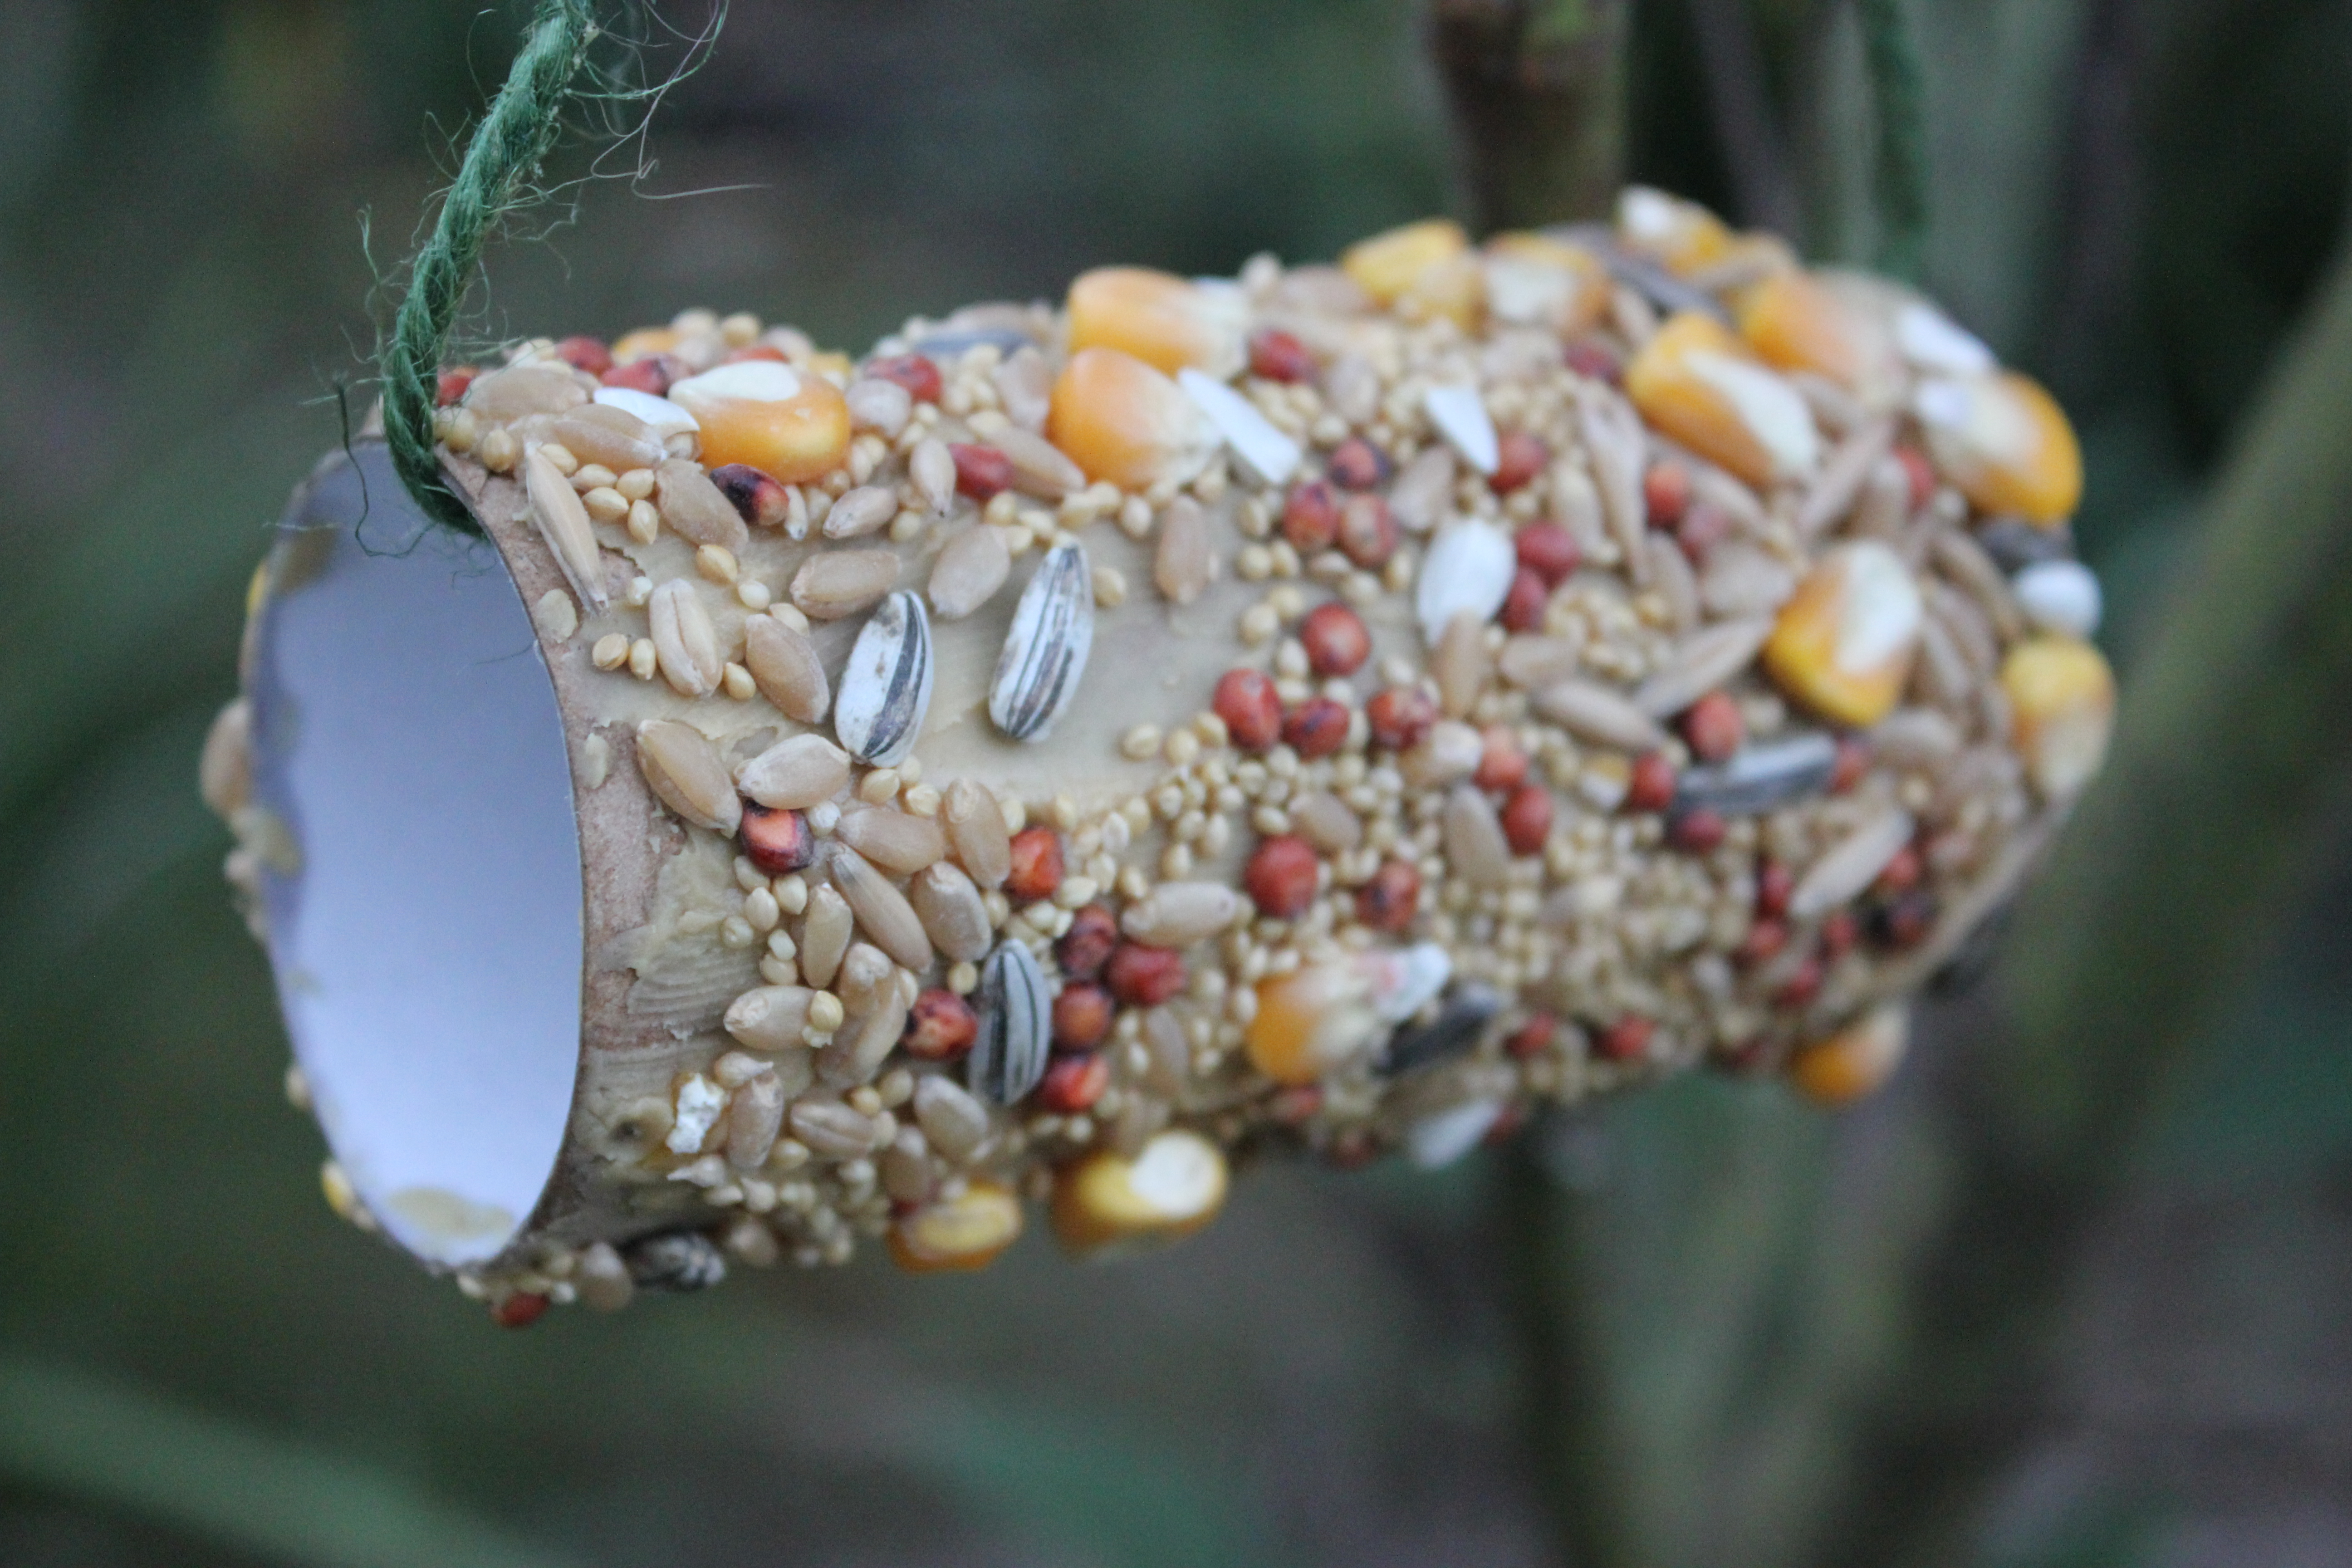 Recycled Bird Feeders - Everywhere